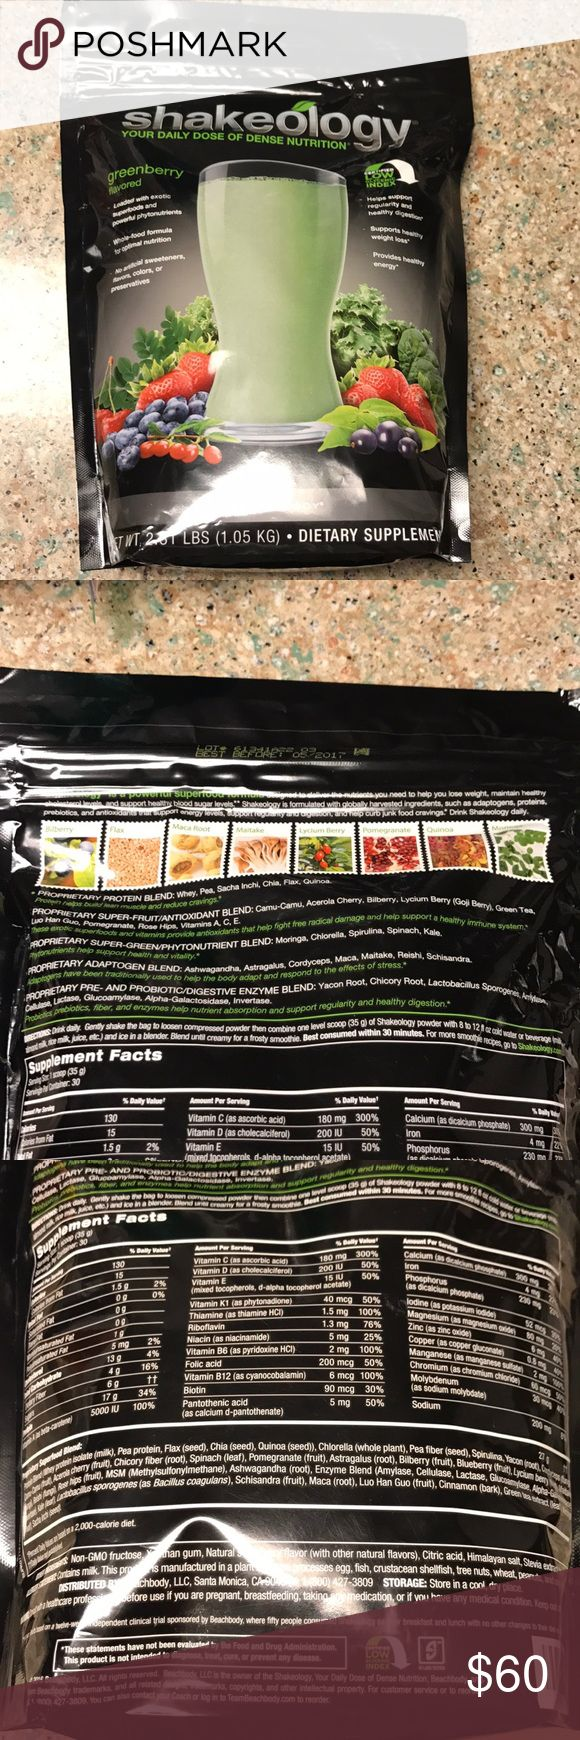 Shakeology Greenberry Sealed bag past exp date Sealed bag of Beachbody Shakeology Greenberry flavor. Powder is green in color. Non vegan, not certified gluten free. please look on Beachbody site for ingredient list details to make sure in case of allergies. This is a full 2.31 pound bulk bag. It makes 30 servings of 1 scoop per/serv. Expired 5/2017, but has been in cool dry pantry and I have taken many myself over a year past expire with no difference. Priced at steal! Paid $120. Beachbody…